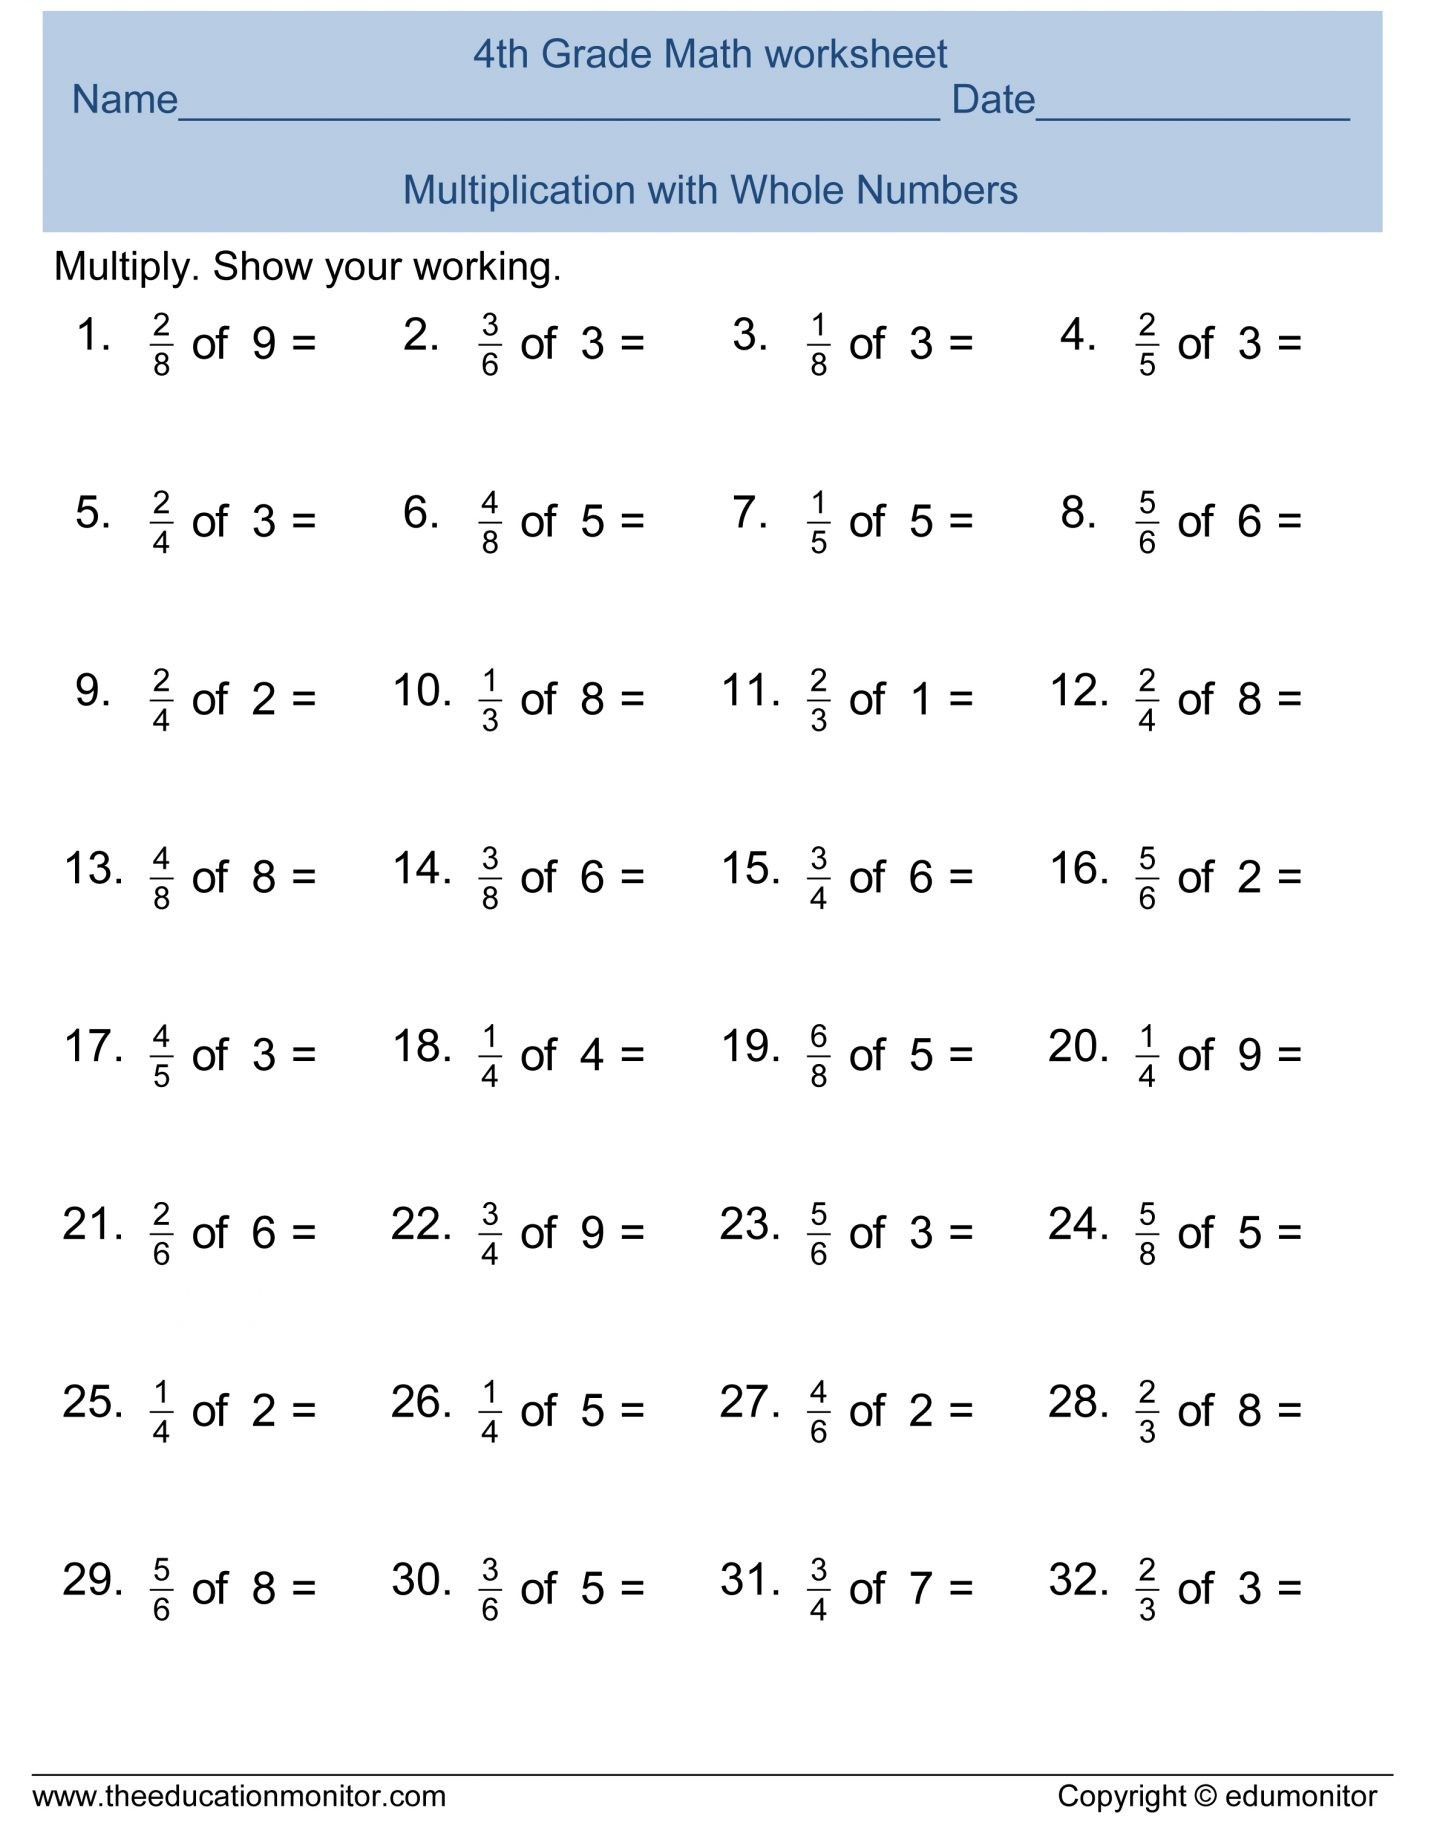 7Th Grade Math Worksheets Free Printable With Answers Stunning - 7Th | 7Th Grade Worksheets Free Printable